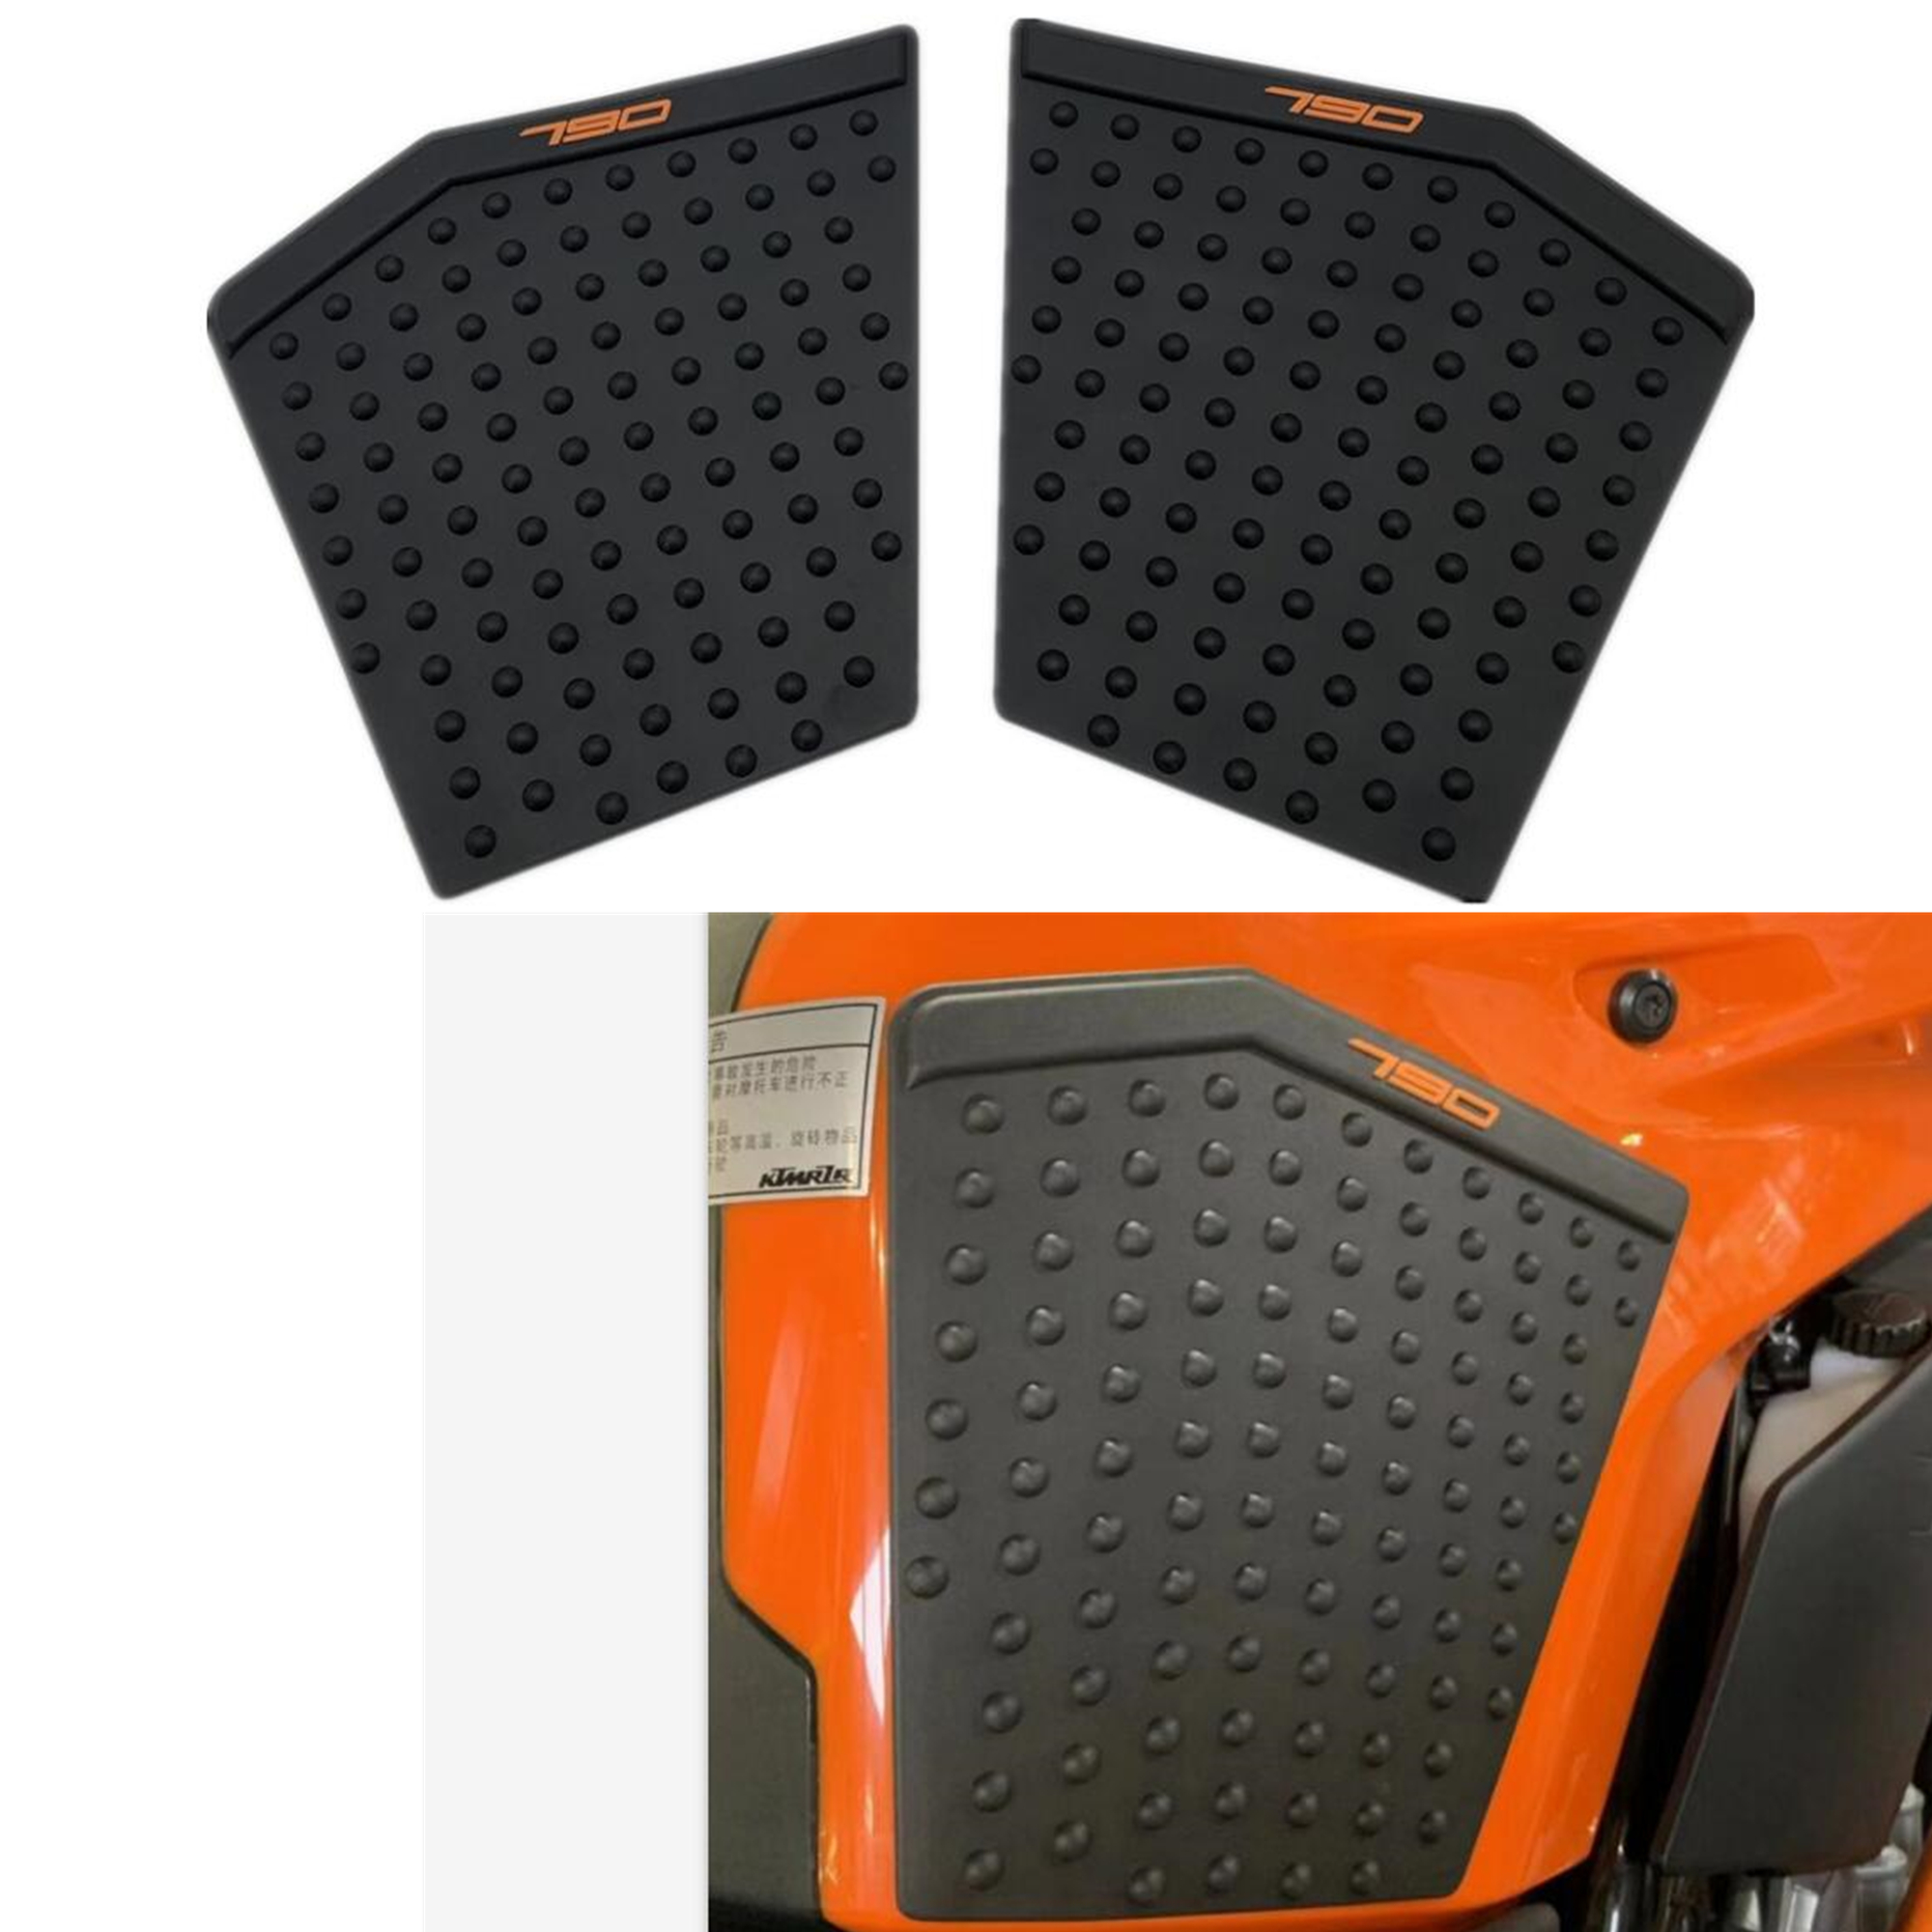 Motorcycle Tank Pad <font><b>Sticker</b></font> For KTM790 <font><b>DUKE</b></font> <font><b>KTM</b></font> <font><b>790</b></font> 2018 2019 Tank Side Gas Knee Grip Protector Decal Antiskid Rubber <font><b>Stickers</b></font> image